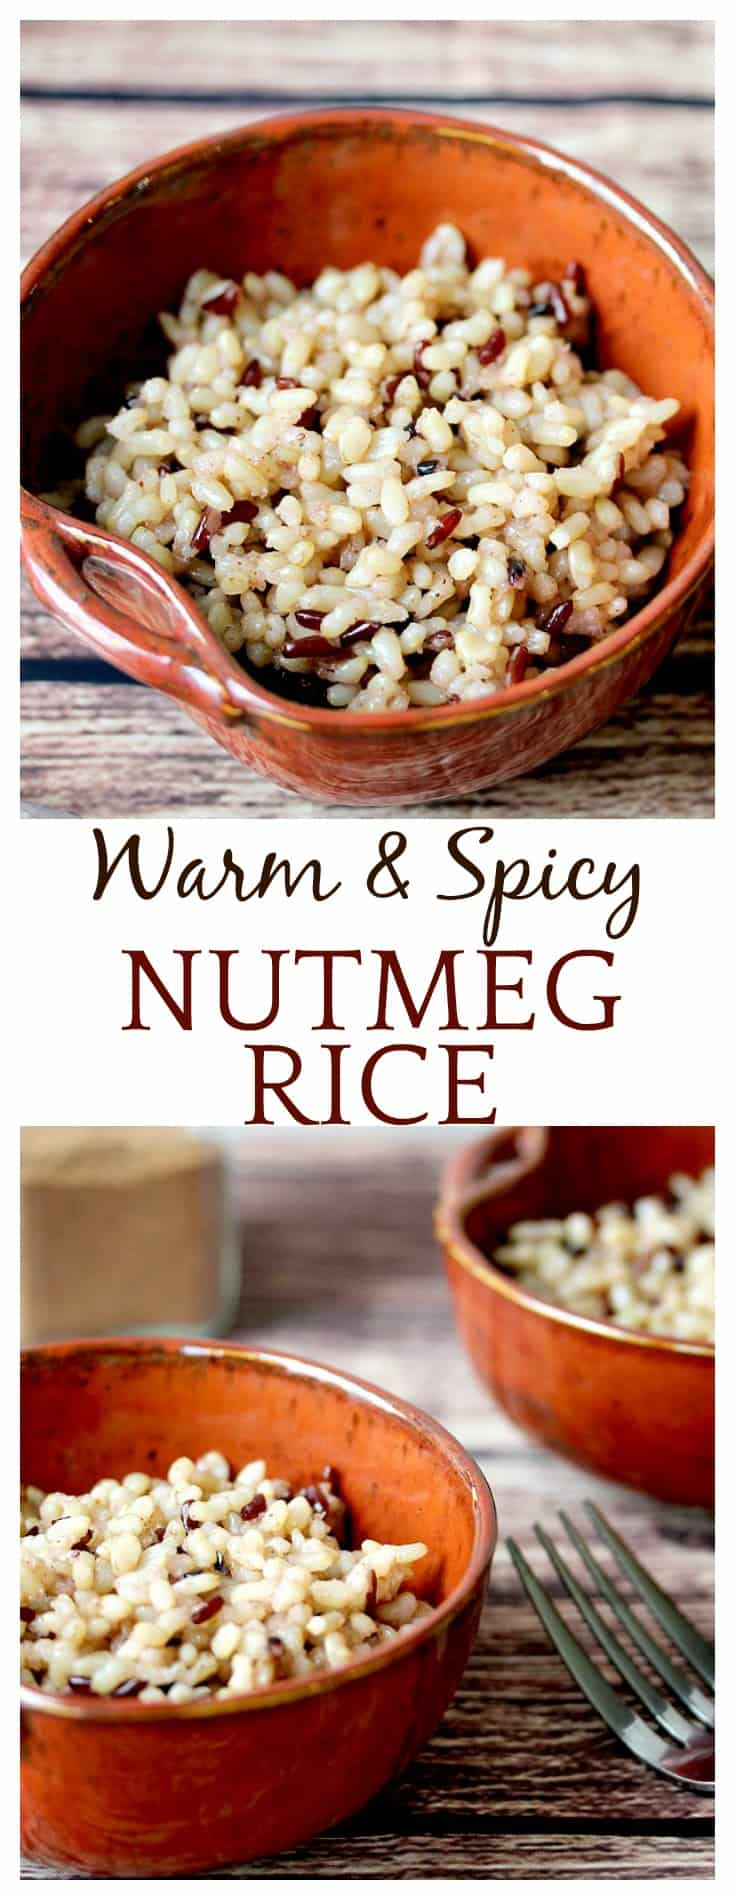 My dad used to make the Nutmeg Rice all the time! It's warm and spicy - another perfect Fall recipe to enjoy as a side dish or even as a dessert!